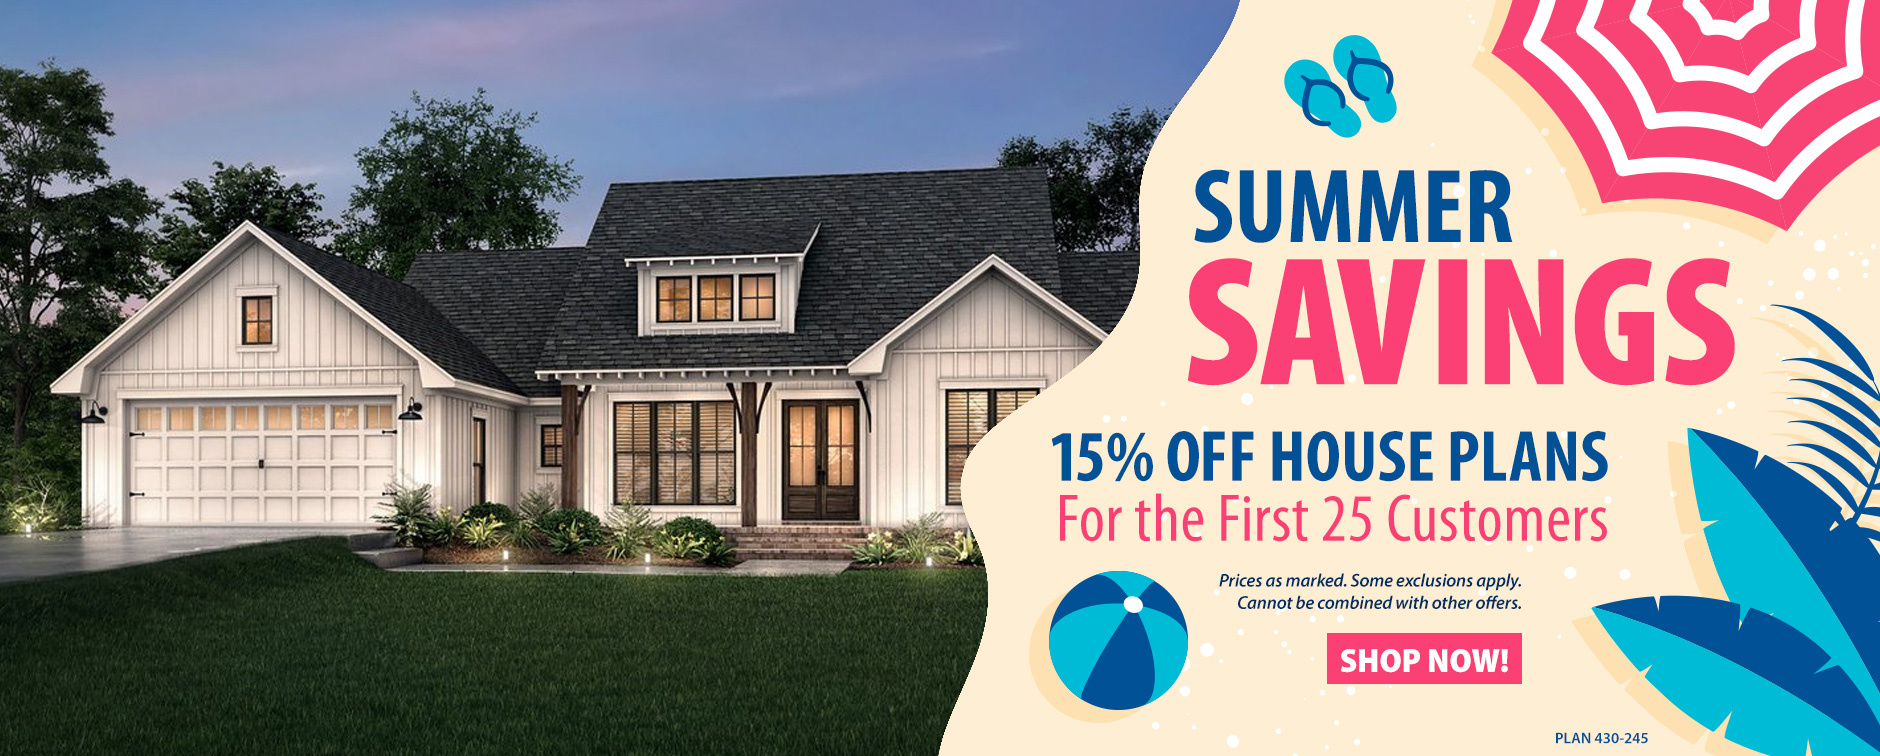 Summer Sale 15% Off House Plans for the First 25 Customers